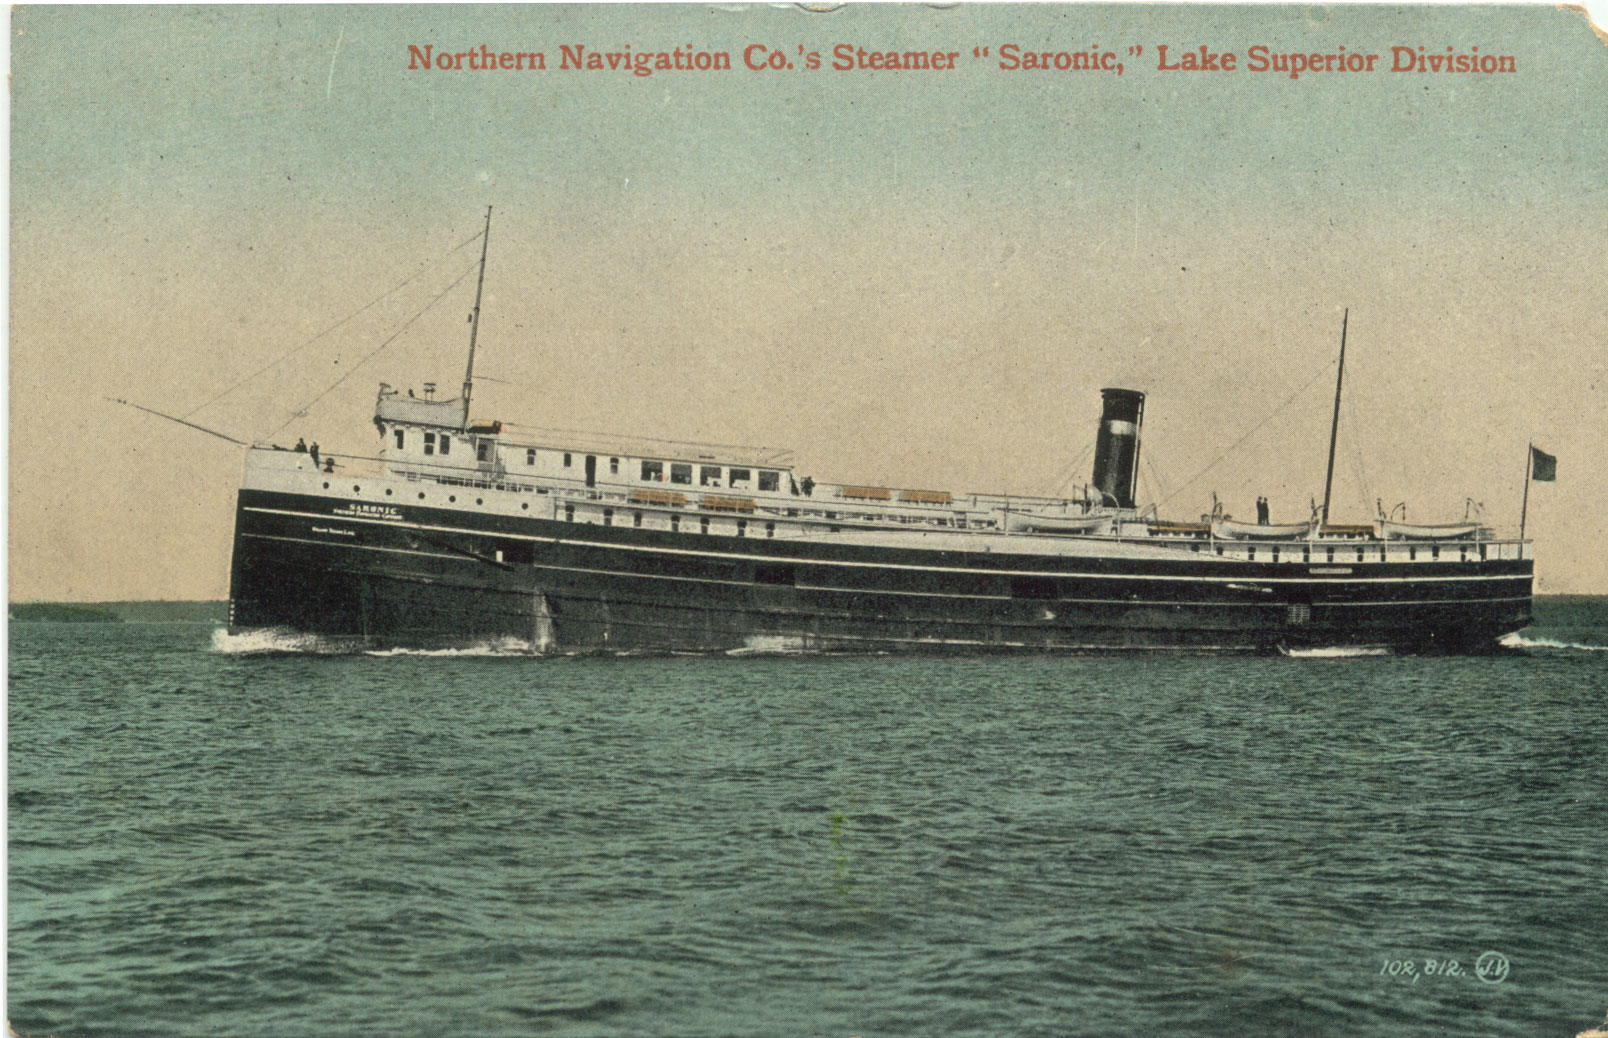 "Northern Navigation Co.'s Steamer ""Saronic,"" Lake Superior Division"